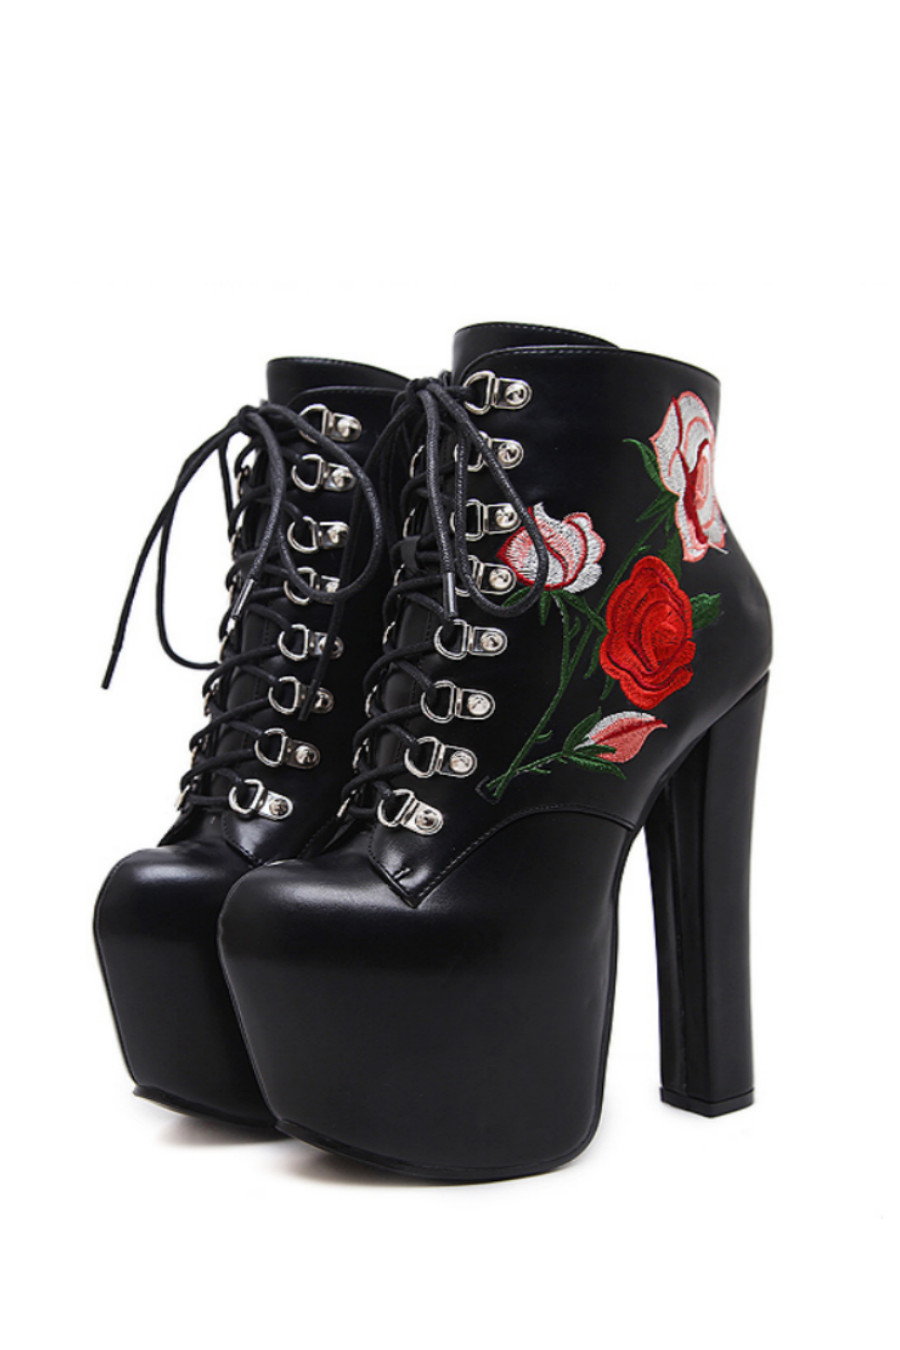 Floral Embroidered Black Heels